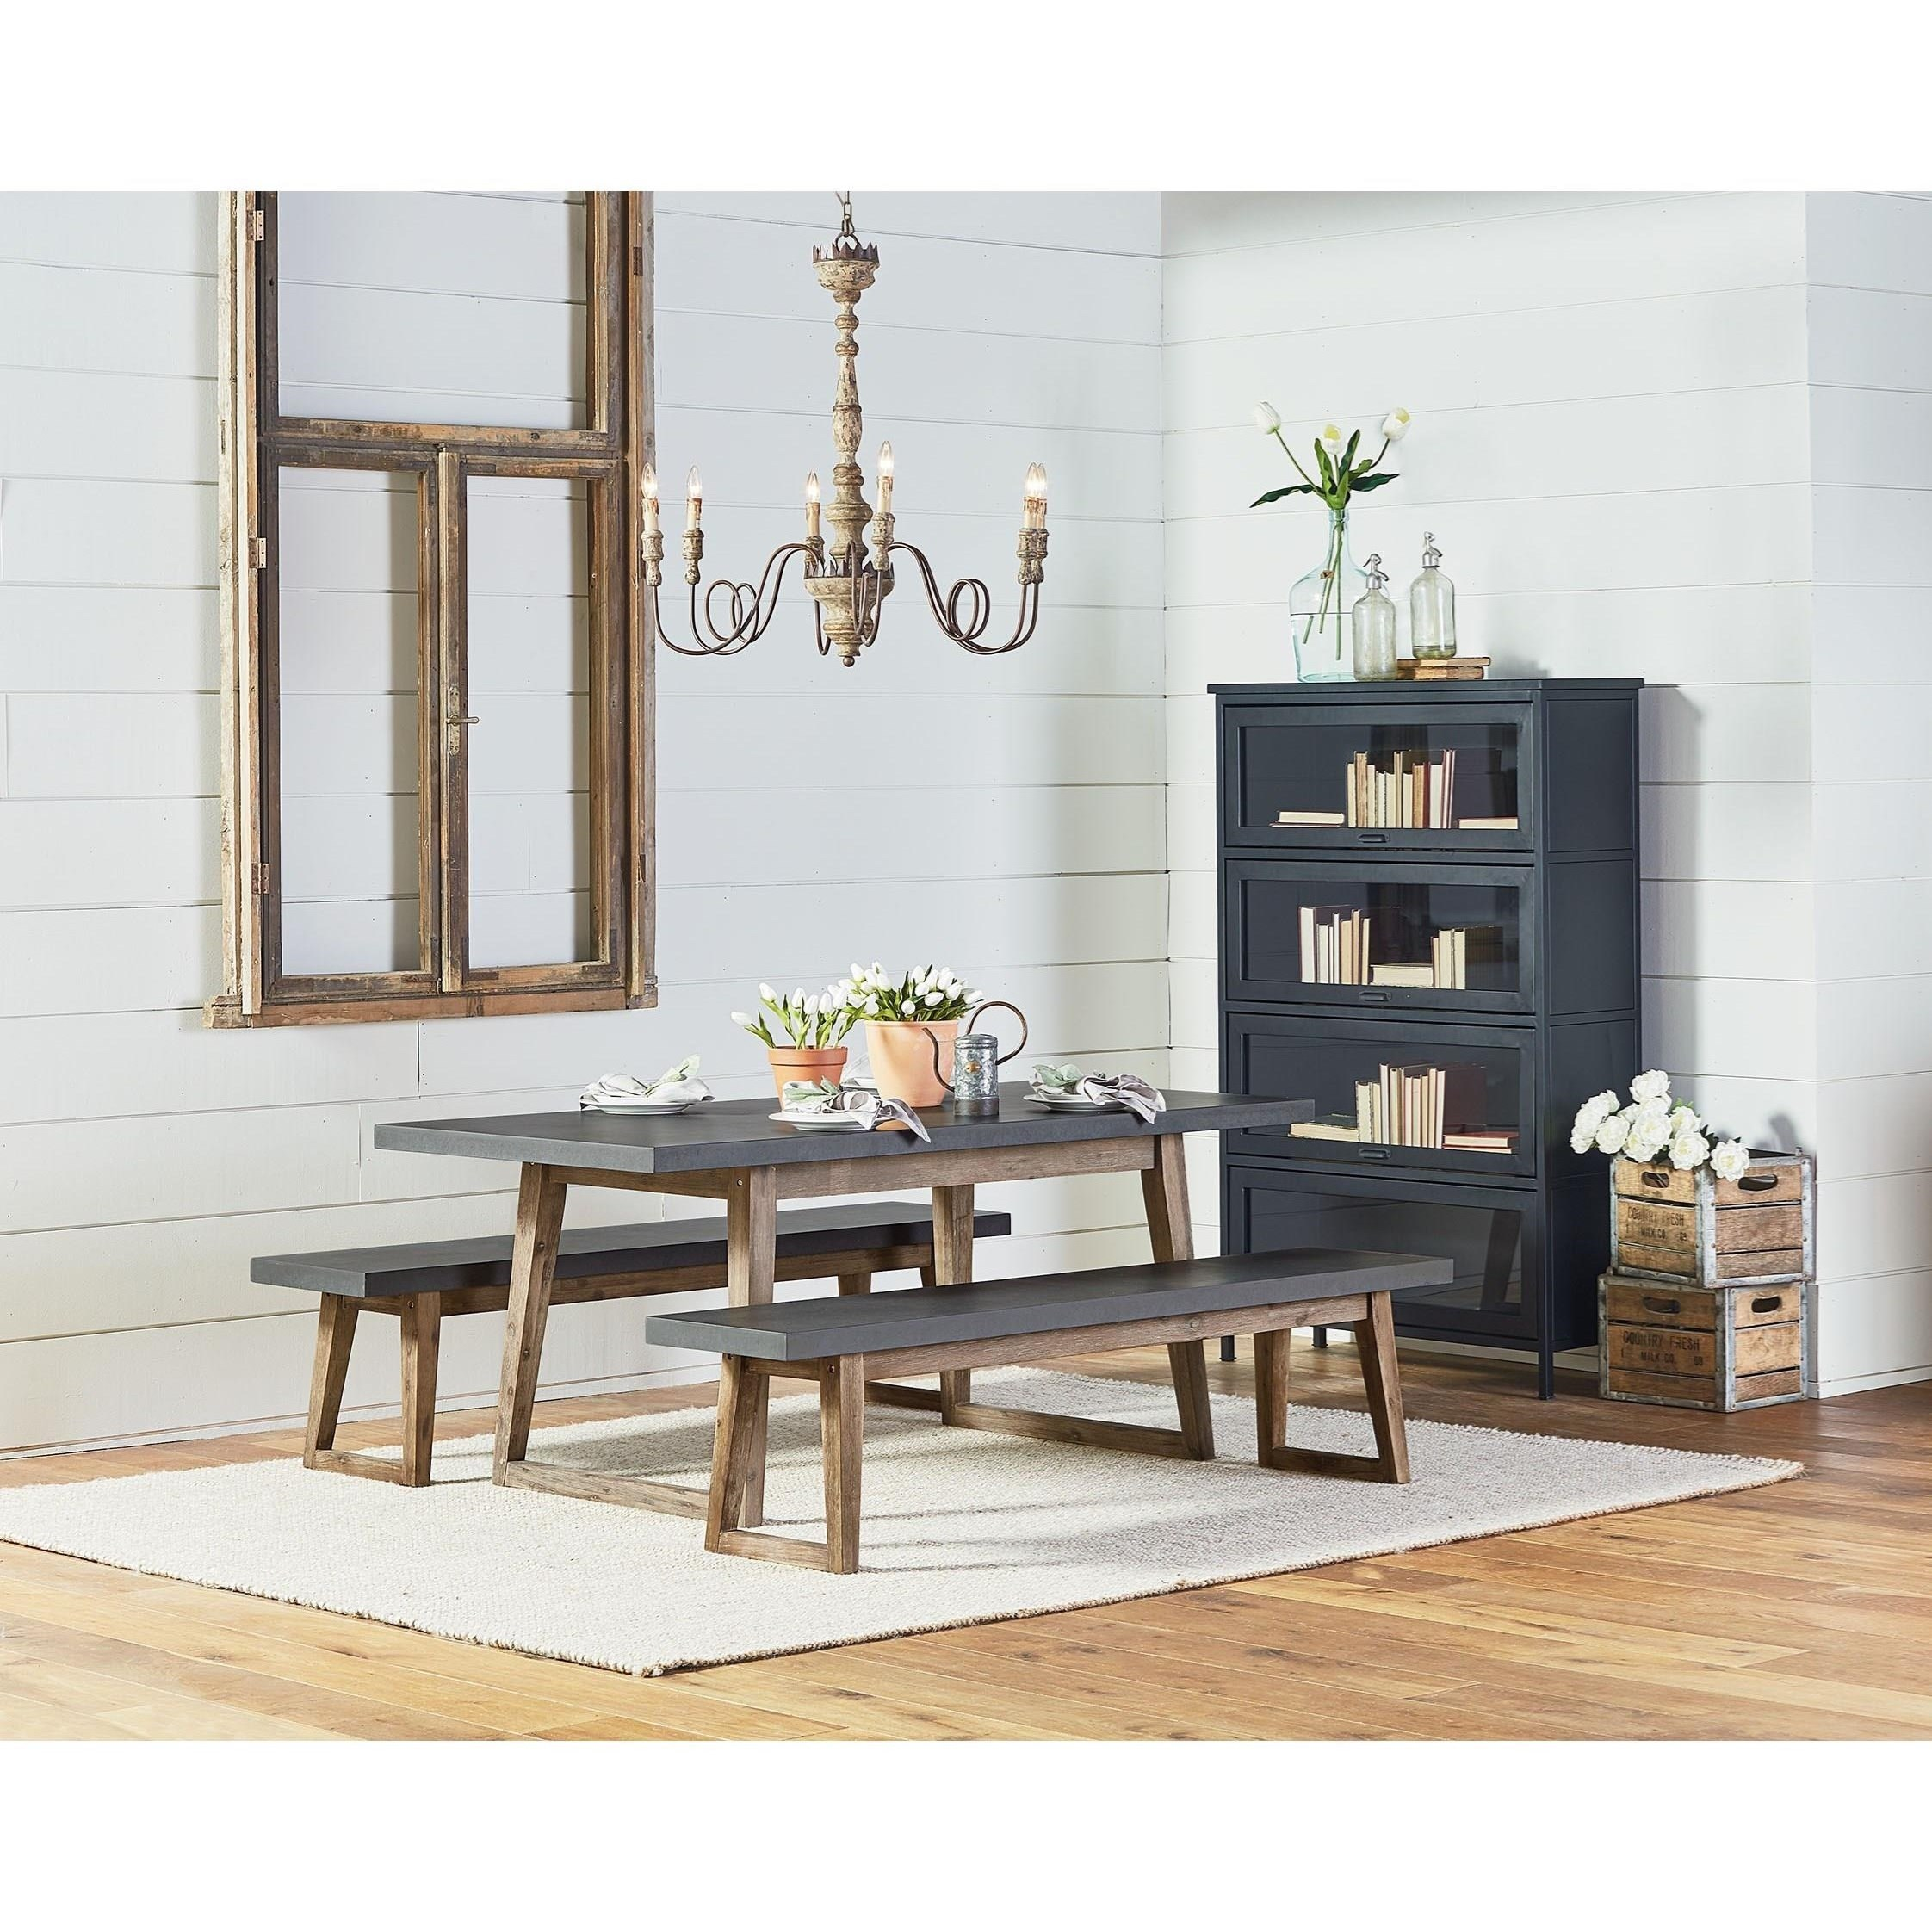 Magnolia Home Furniture Park Bench: Magnolia Home By Joanna Gaines Industrial Hiatus Dining